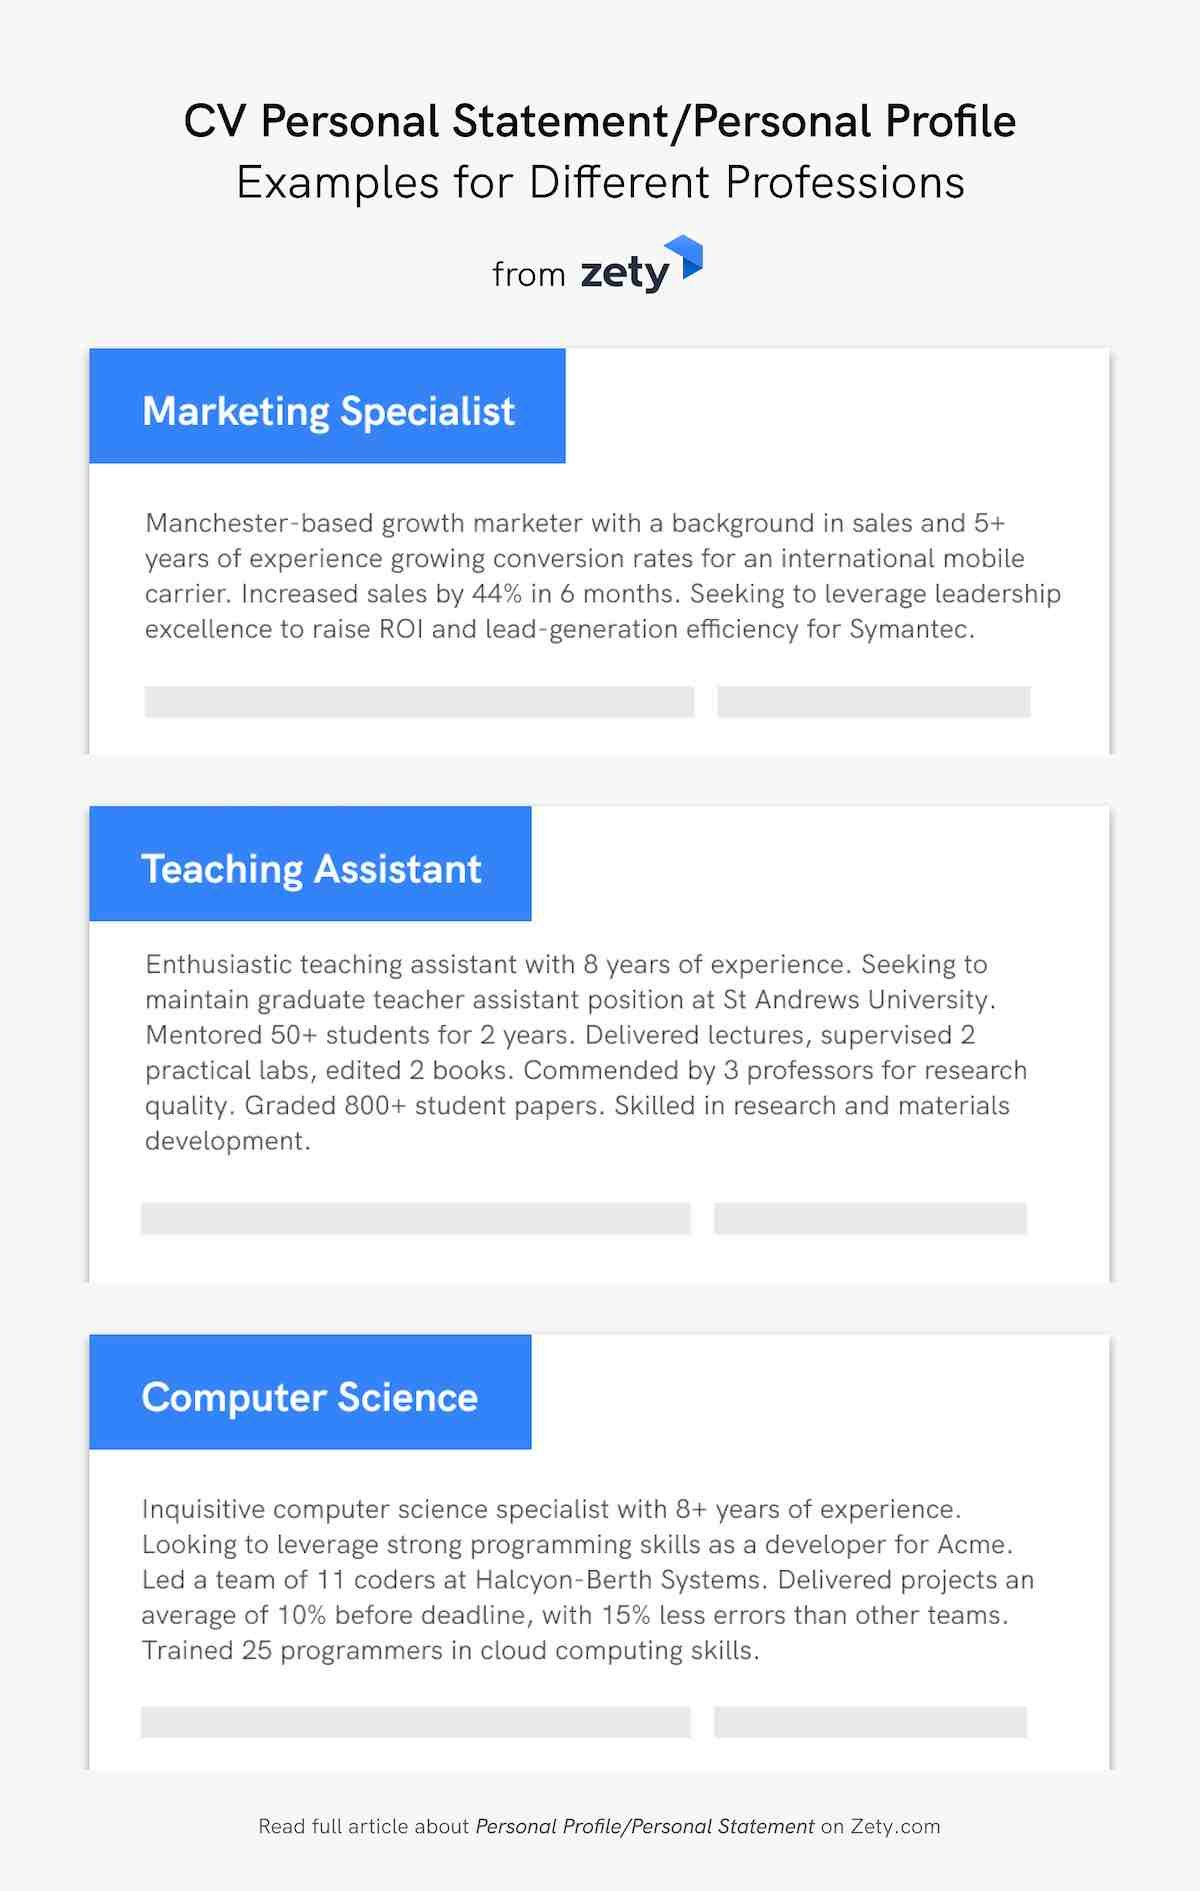 CV Personal StatementPersonal Profile Examples for Different Professions